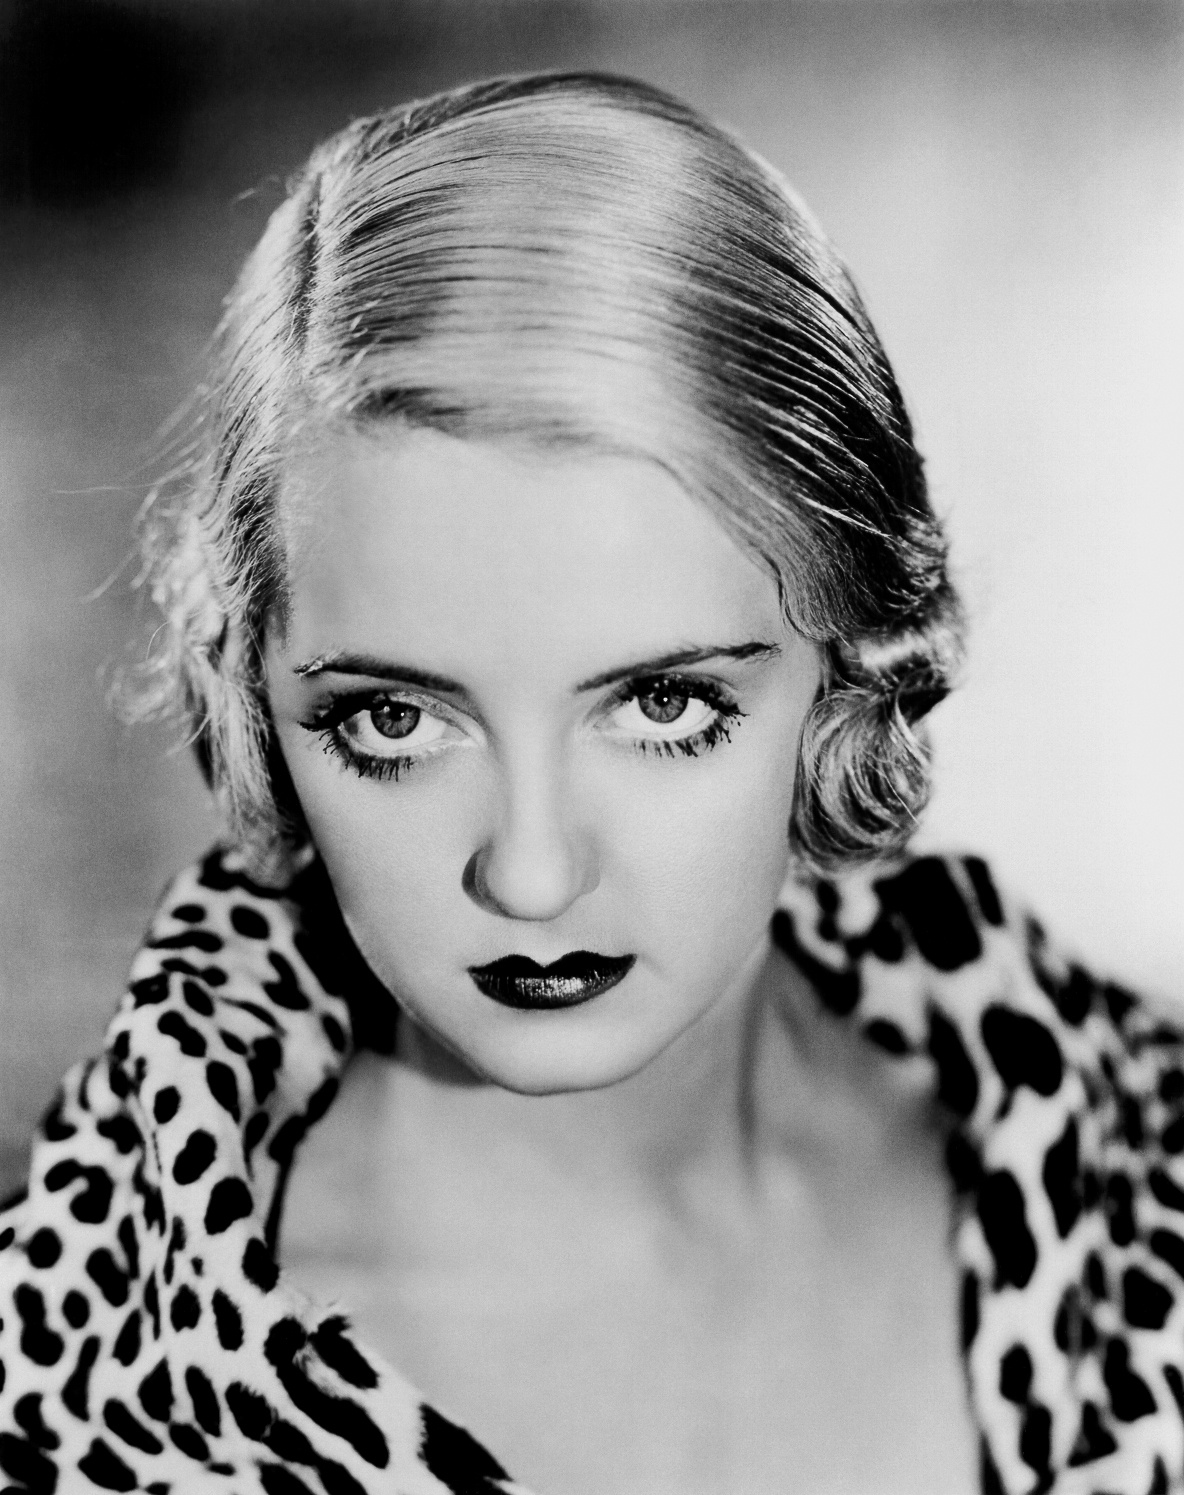 bette davis biografia e filmografia dell 39 attrice di hollywood. Black Bedroom Furniture Sets. Home Design Ideas